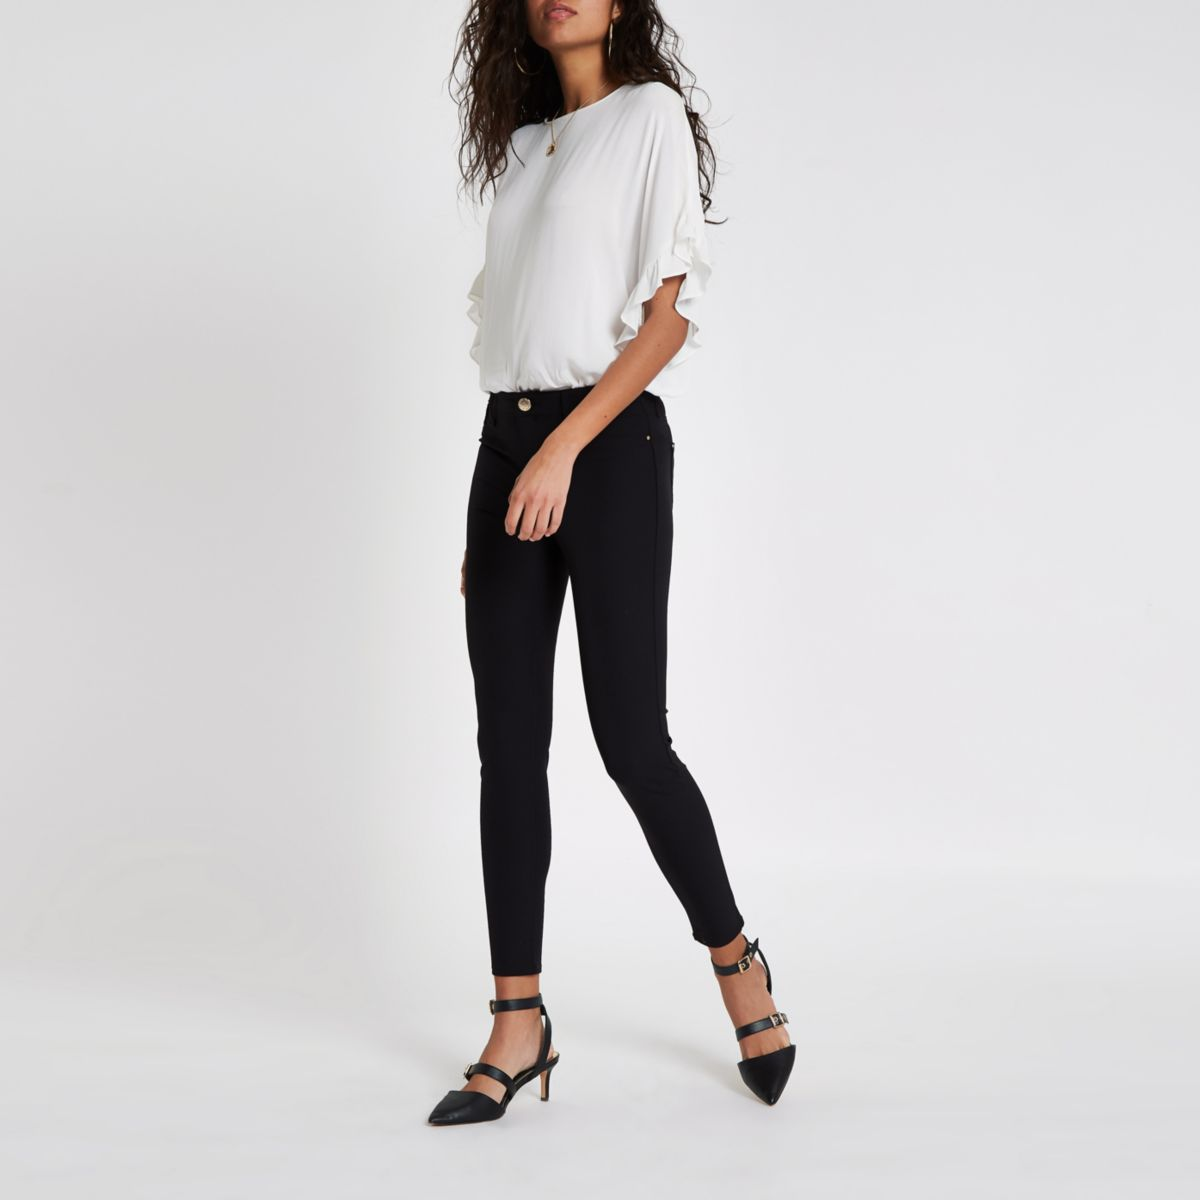 Black high waisted stretch trousers